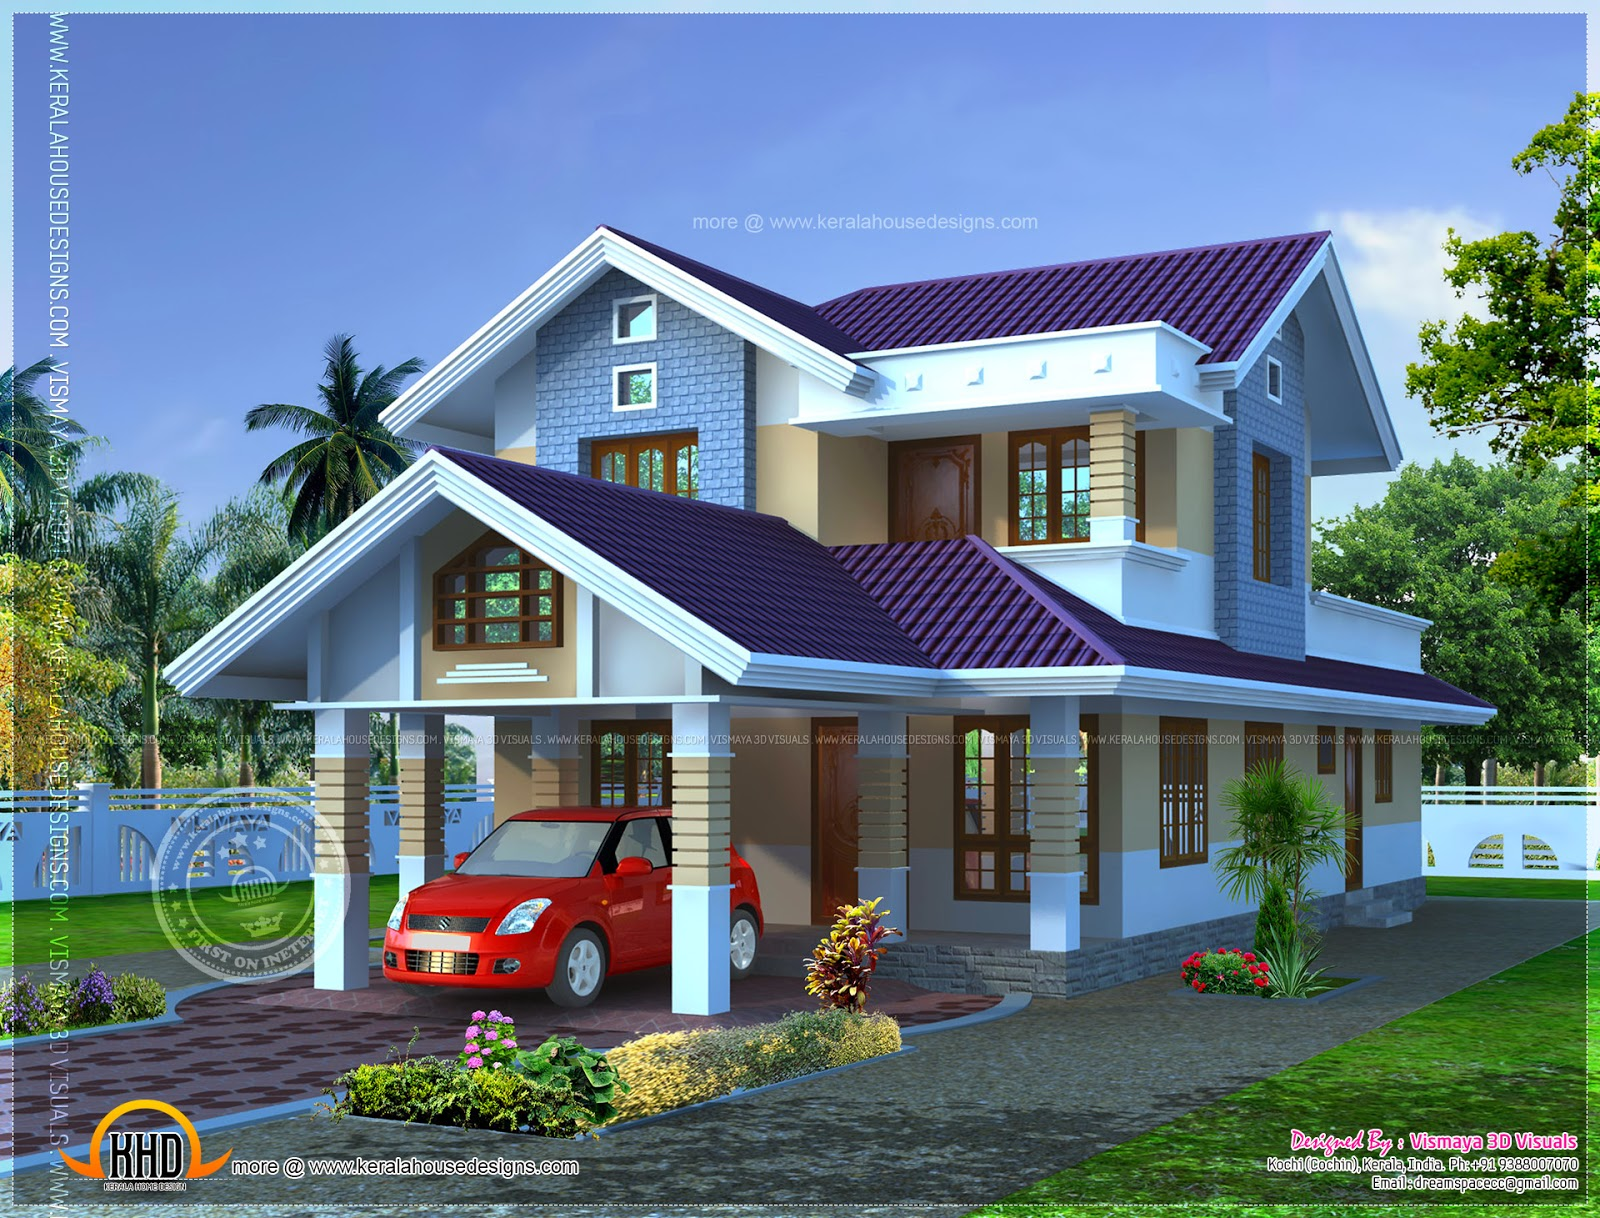 Narrow lot house plan kerala home design and floor plans for House design plans for small lots